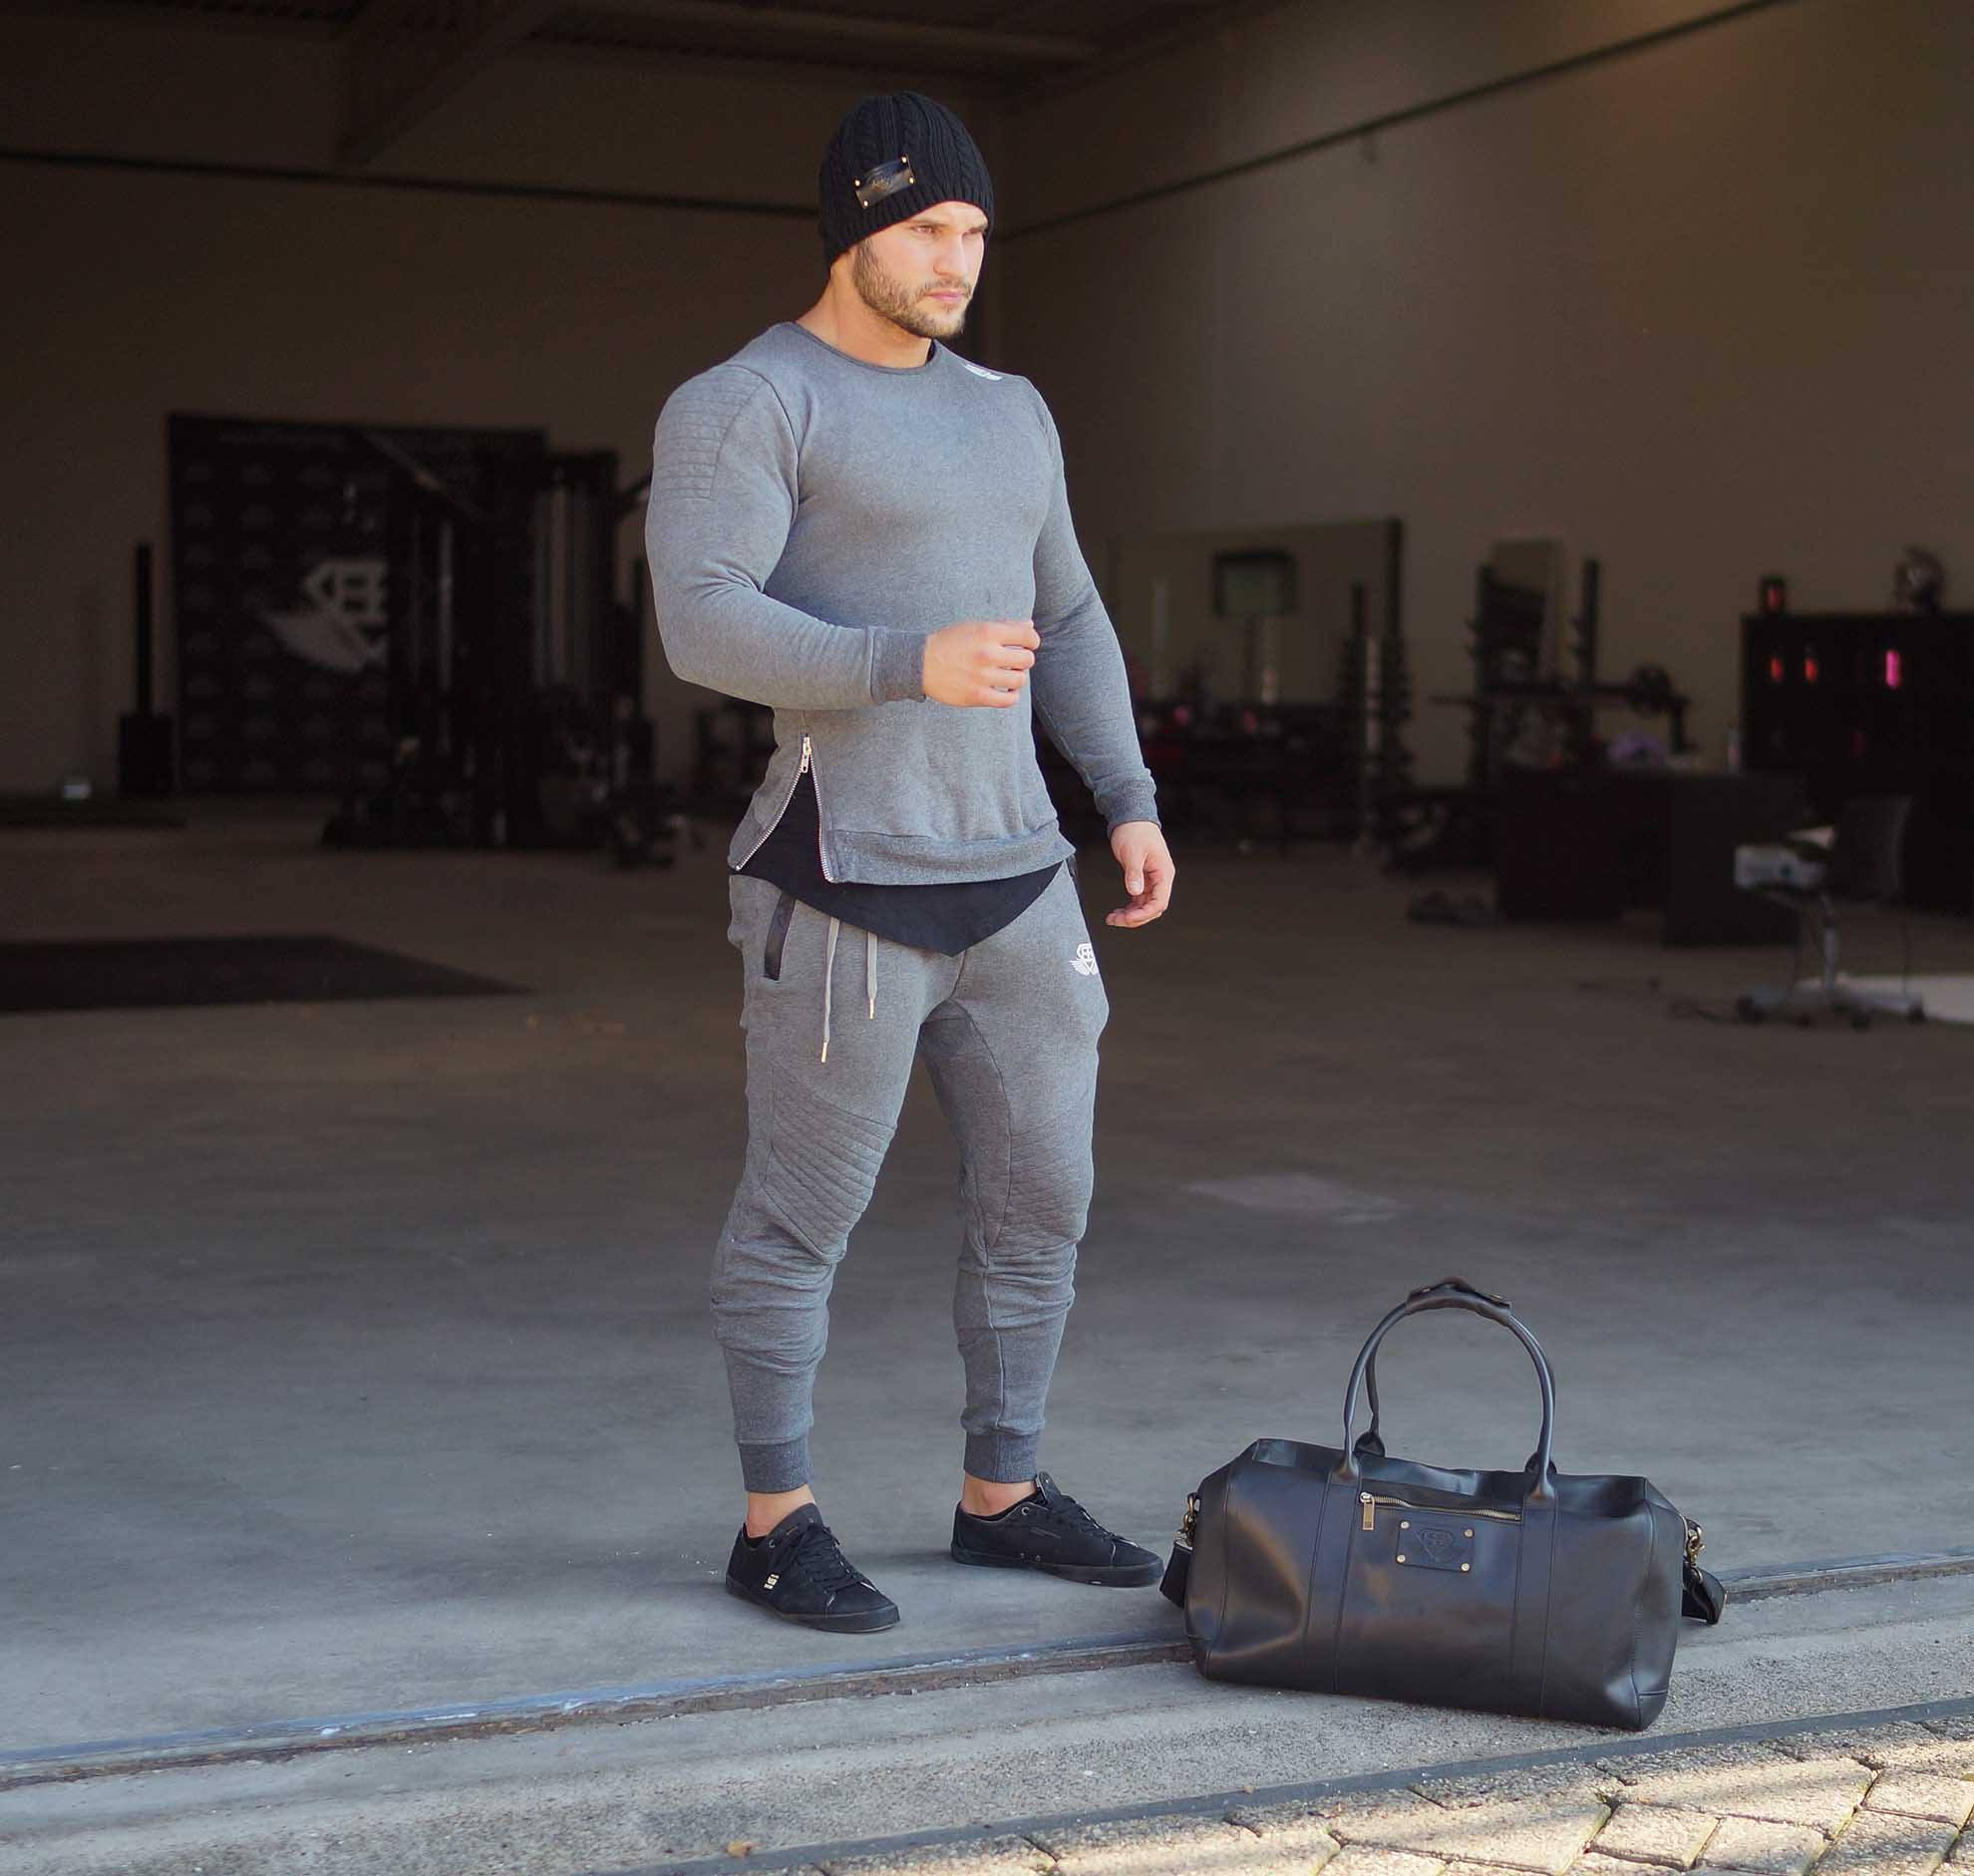 Men's workout outfits